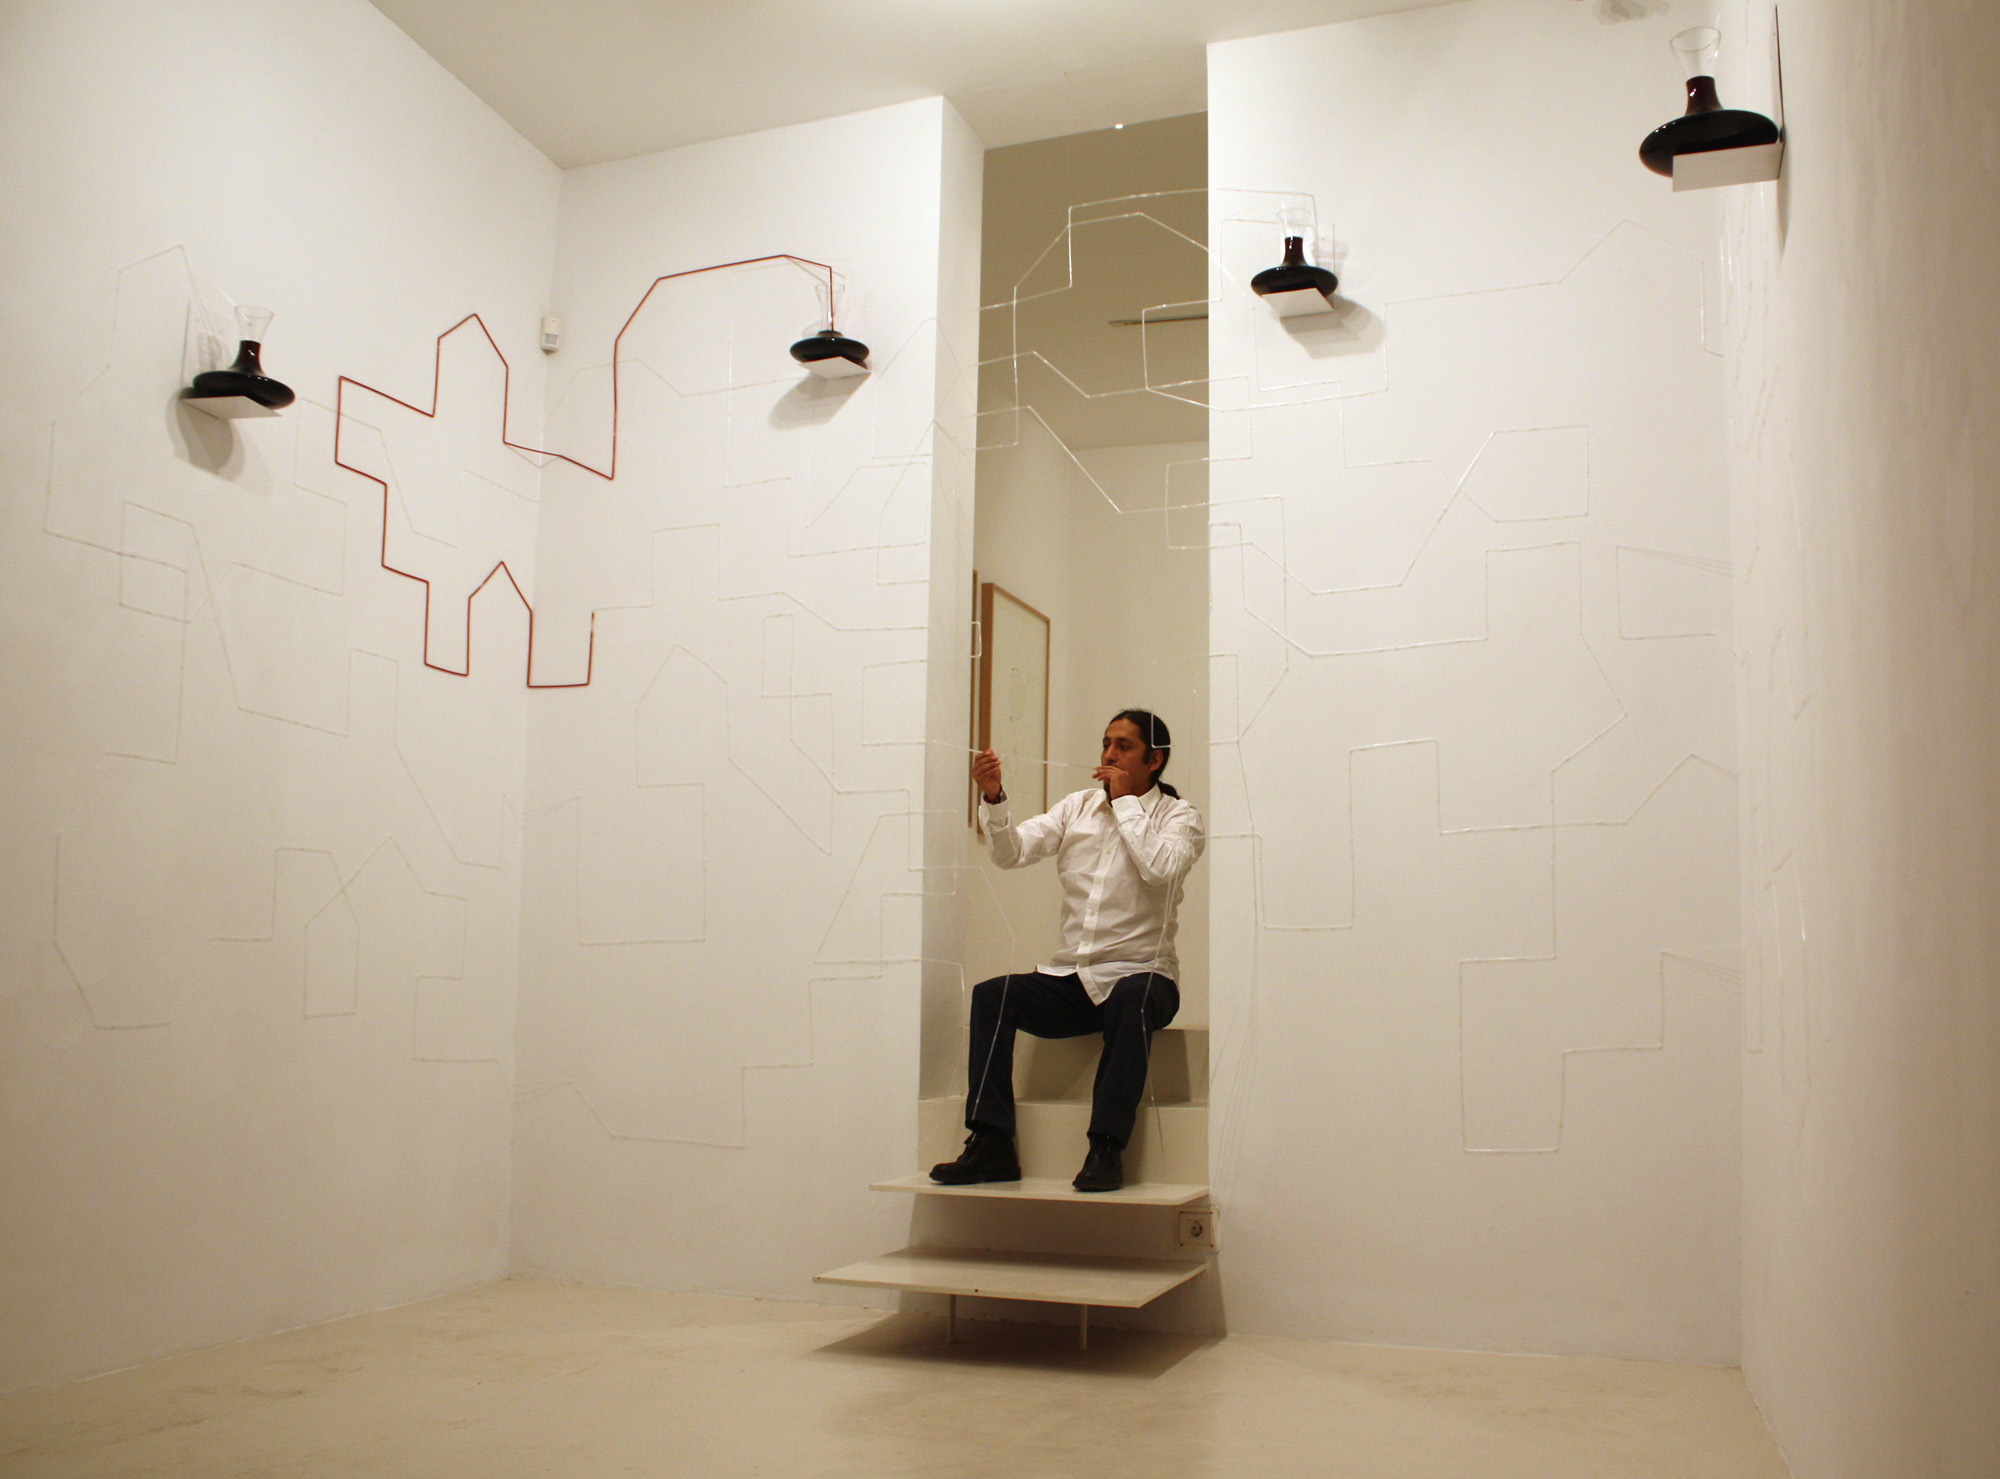 Performance and installation The flow of thought, Palma 2011